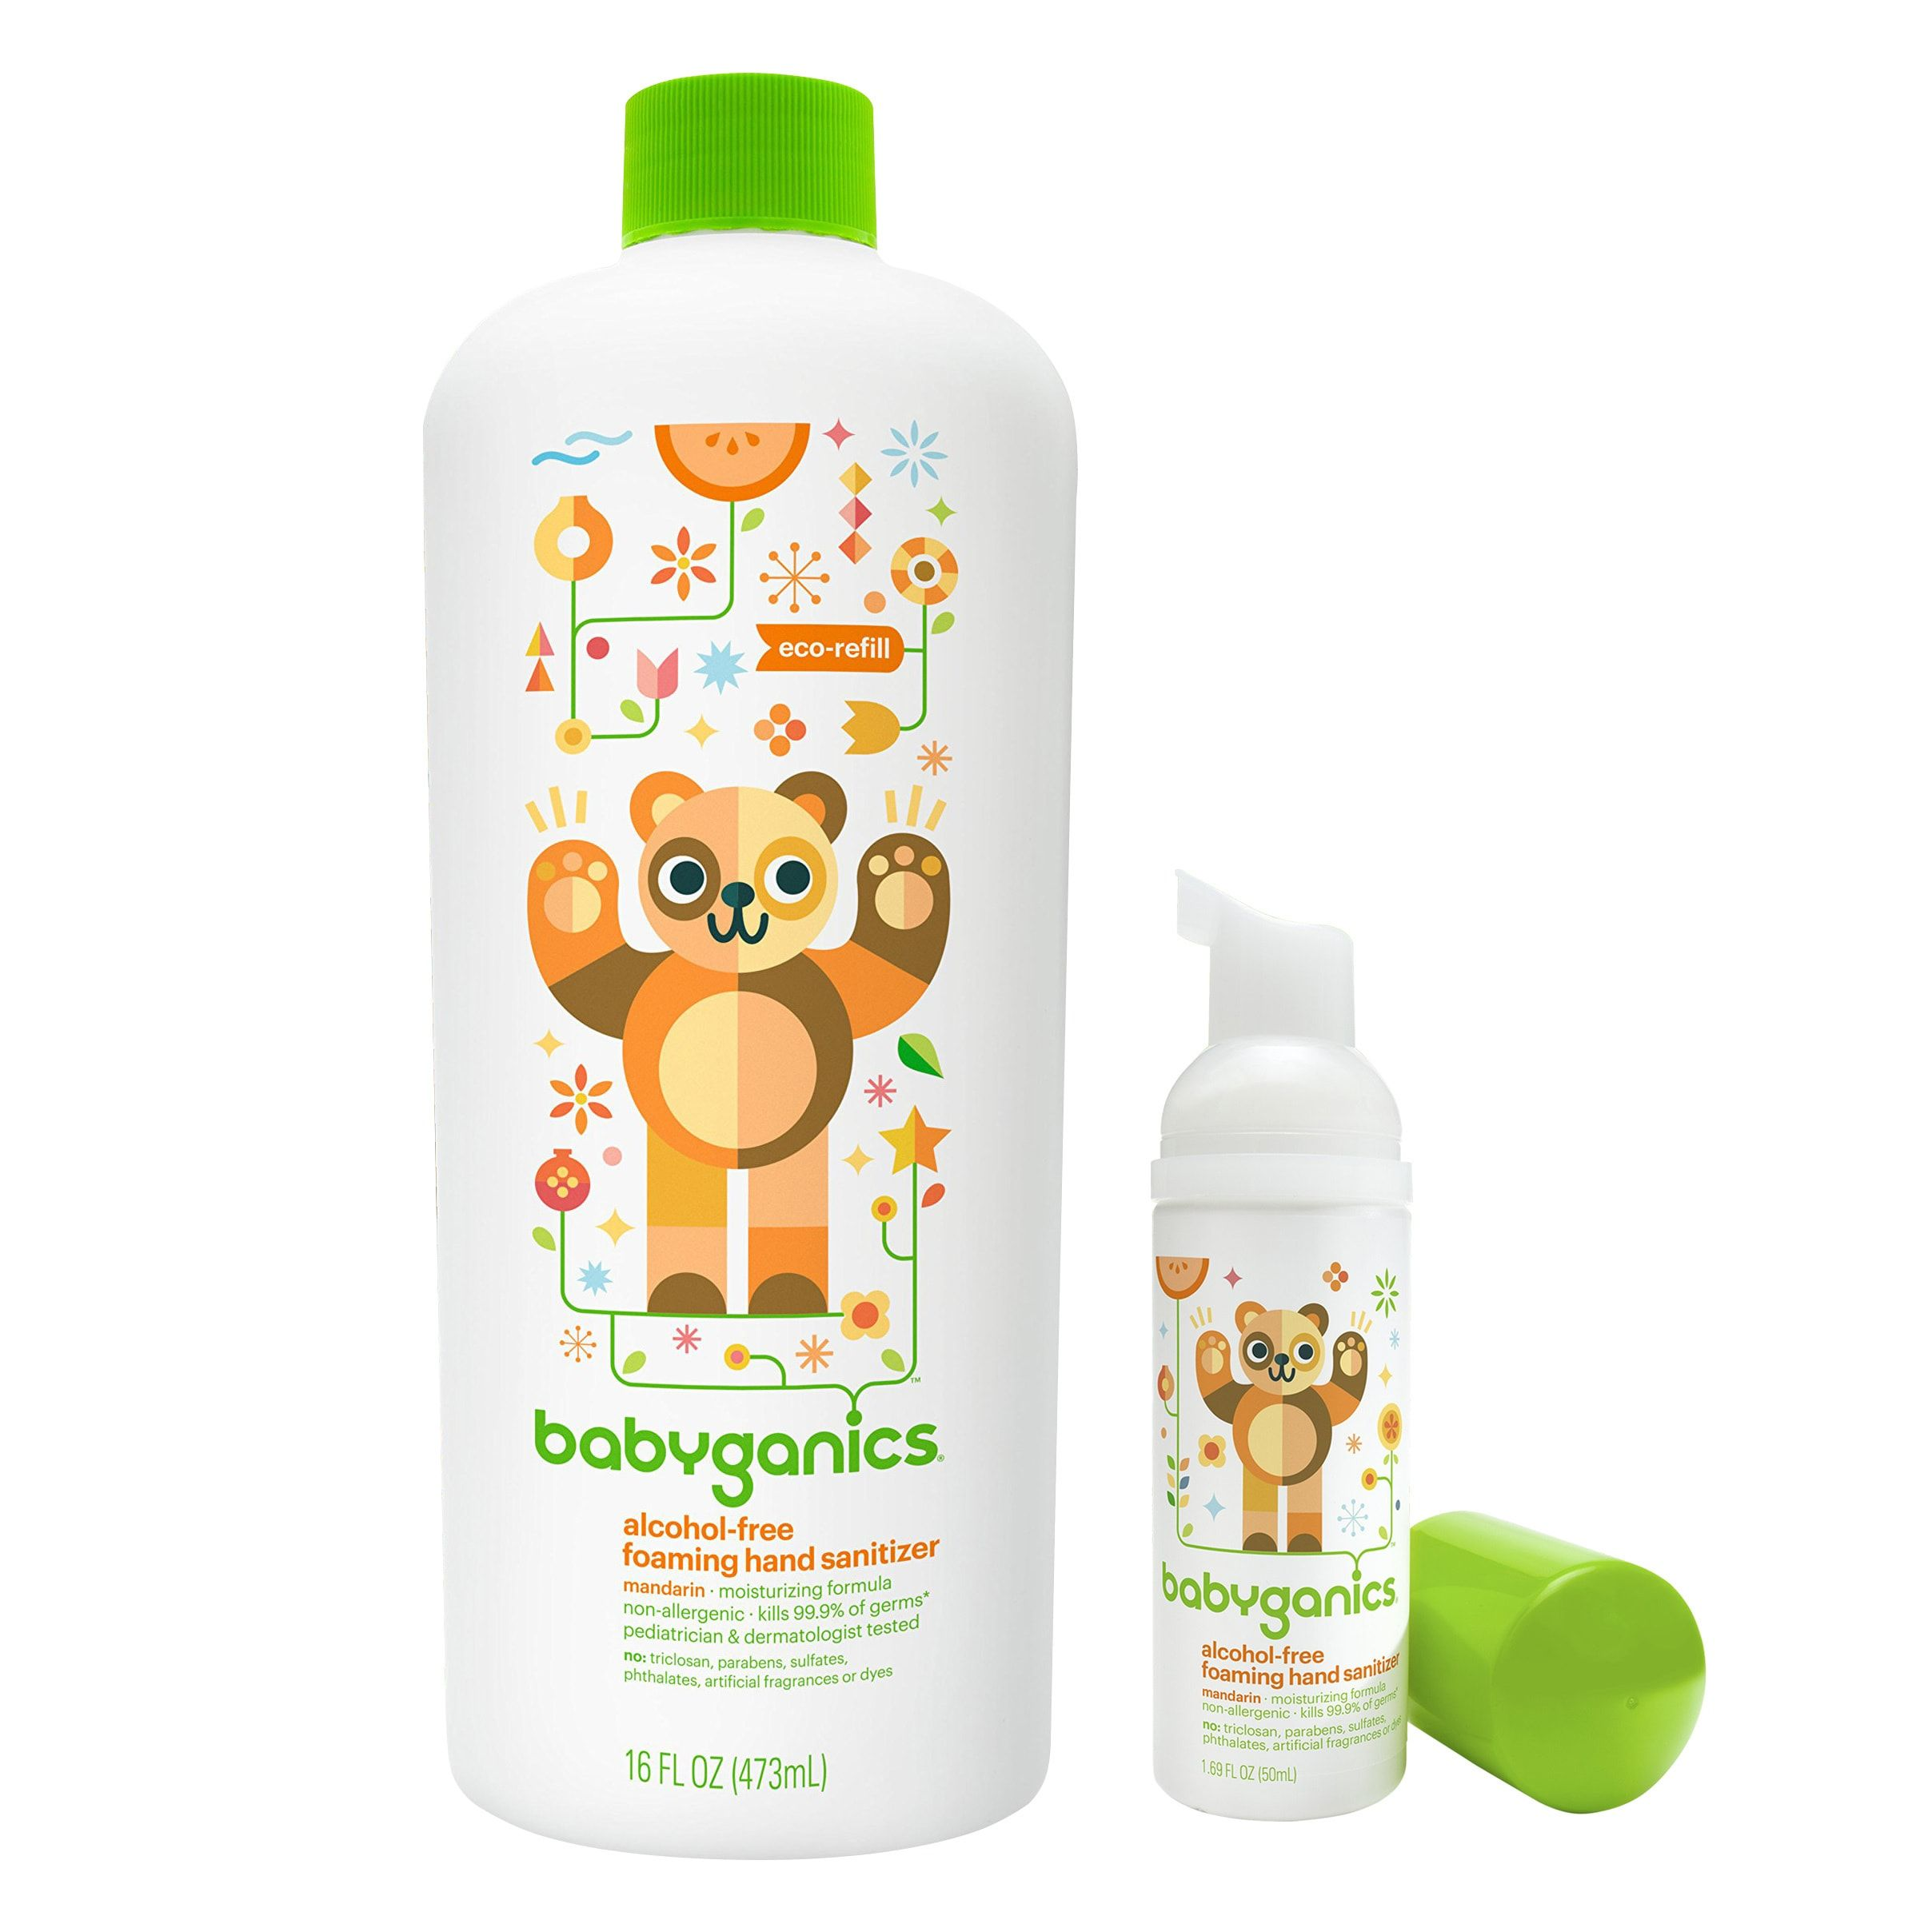 Babyganics Foaming Hand Sanitizer For On The Go With 16 Ounce